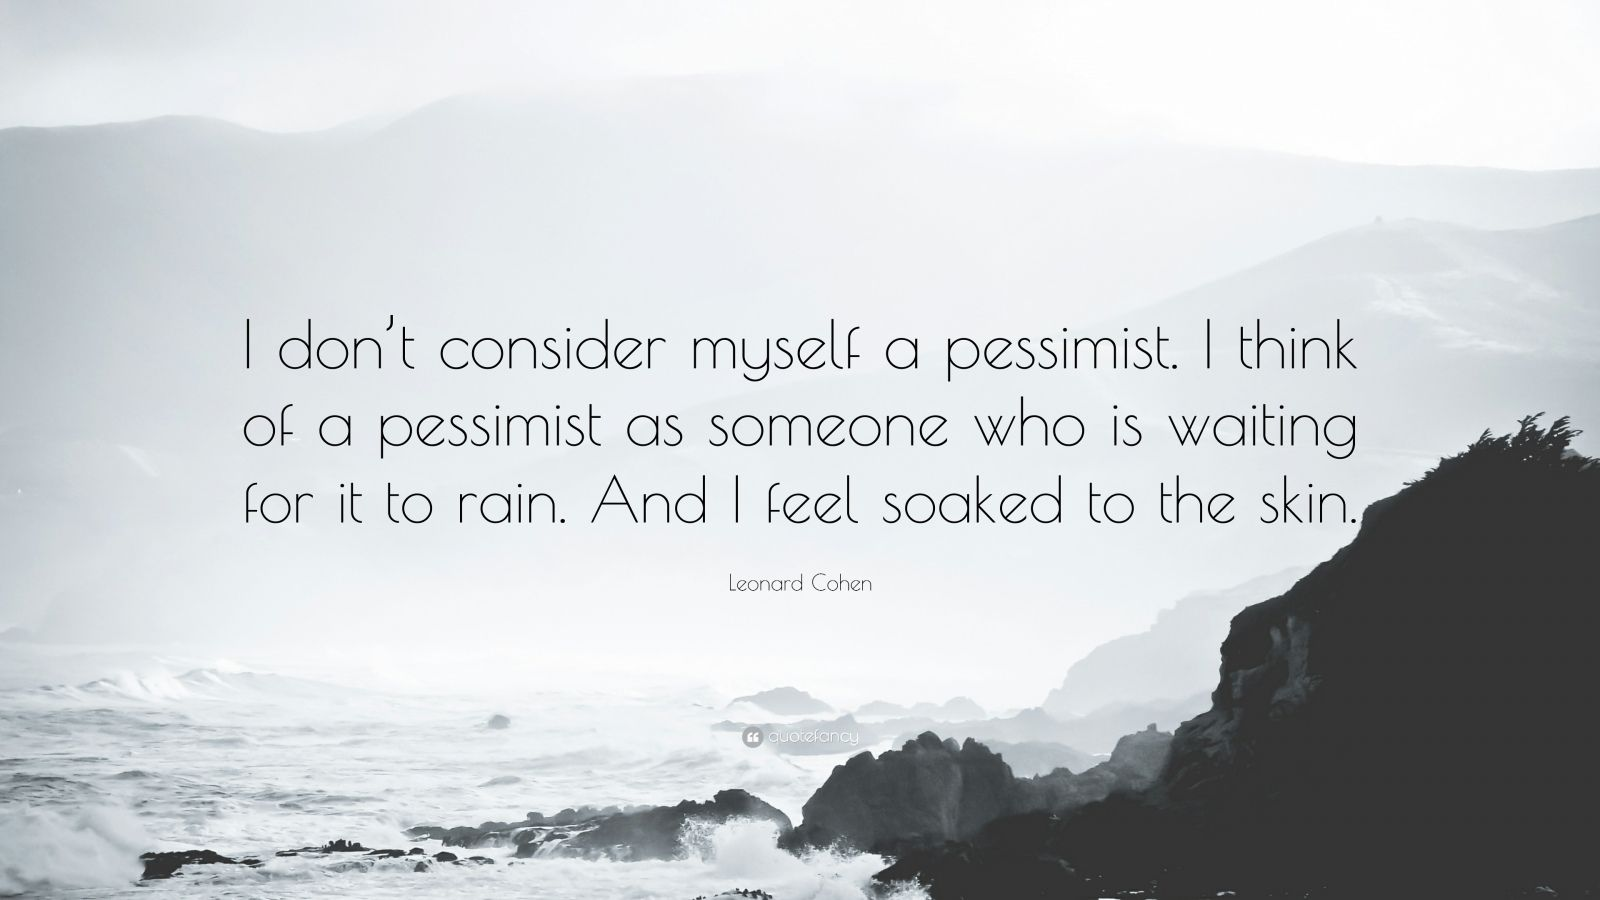 """Leonard Cohen Quote: """"I don't consider myself a pessimist. I think of a pessimist as someone who is waiting for it to rain. And I feel soaked to the skin."""""""